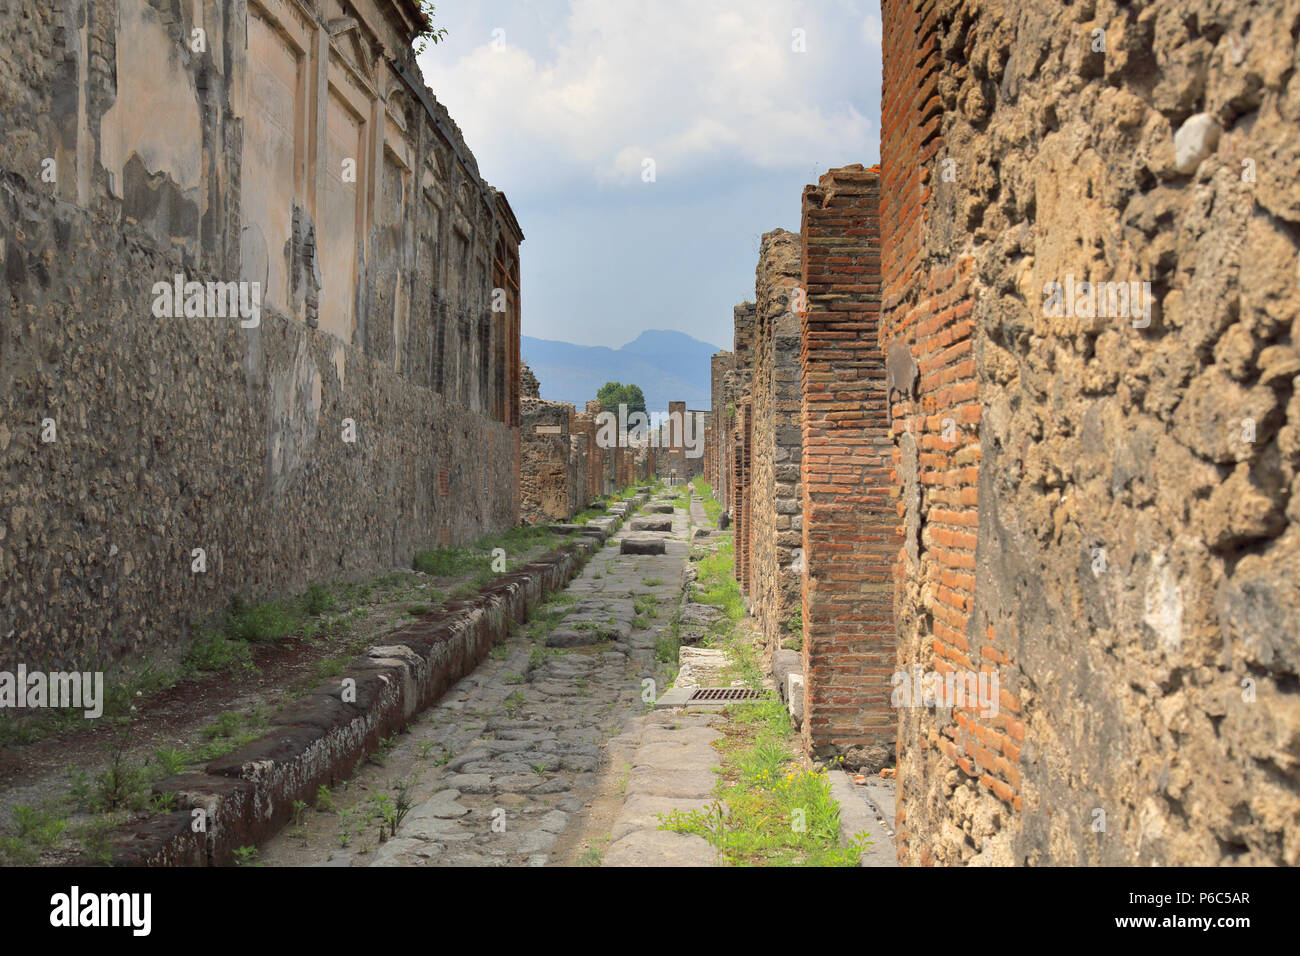 the recovered ruins of Pompeii after the eruption of vesuvius in AD 79 - Stock Image